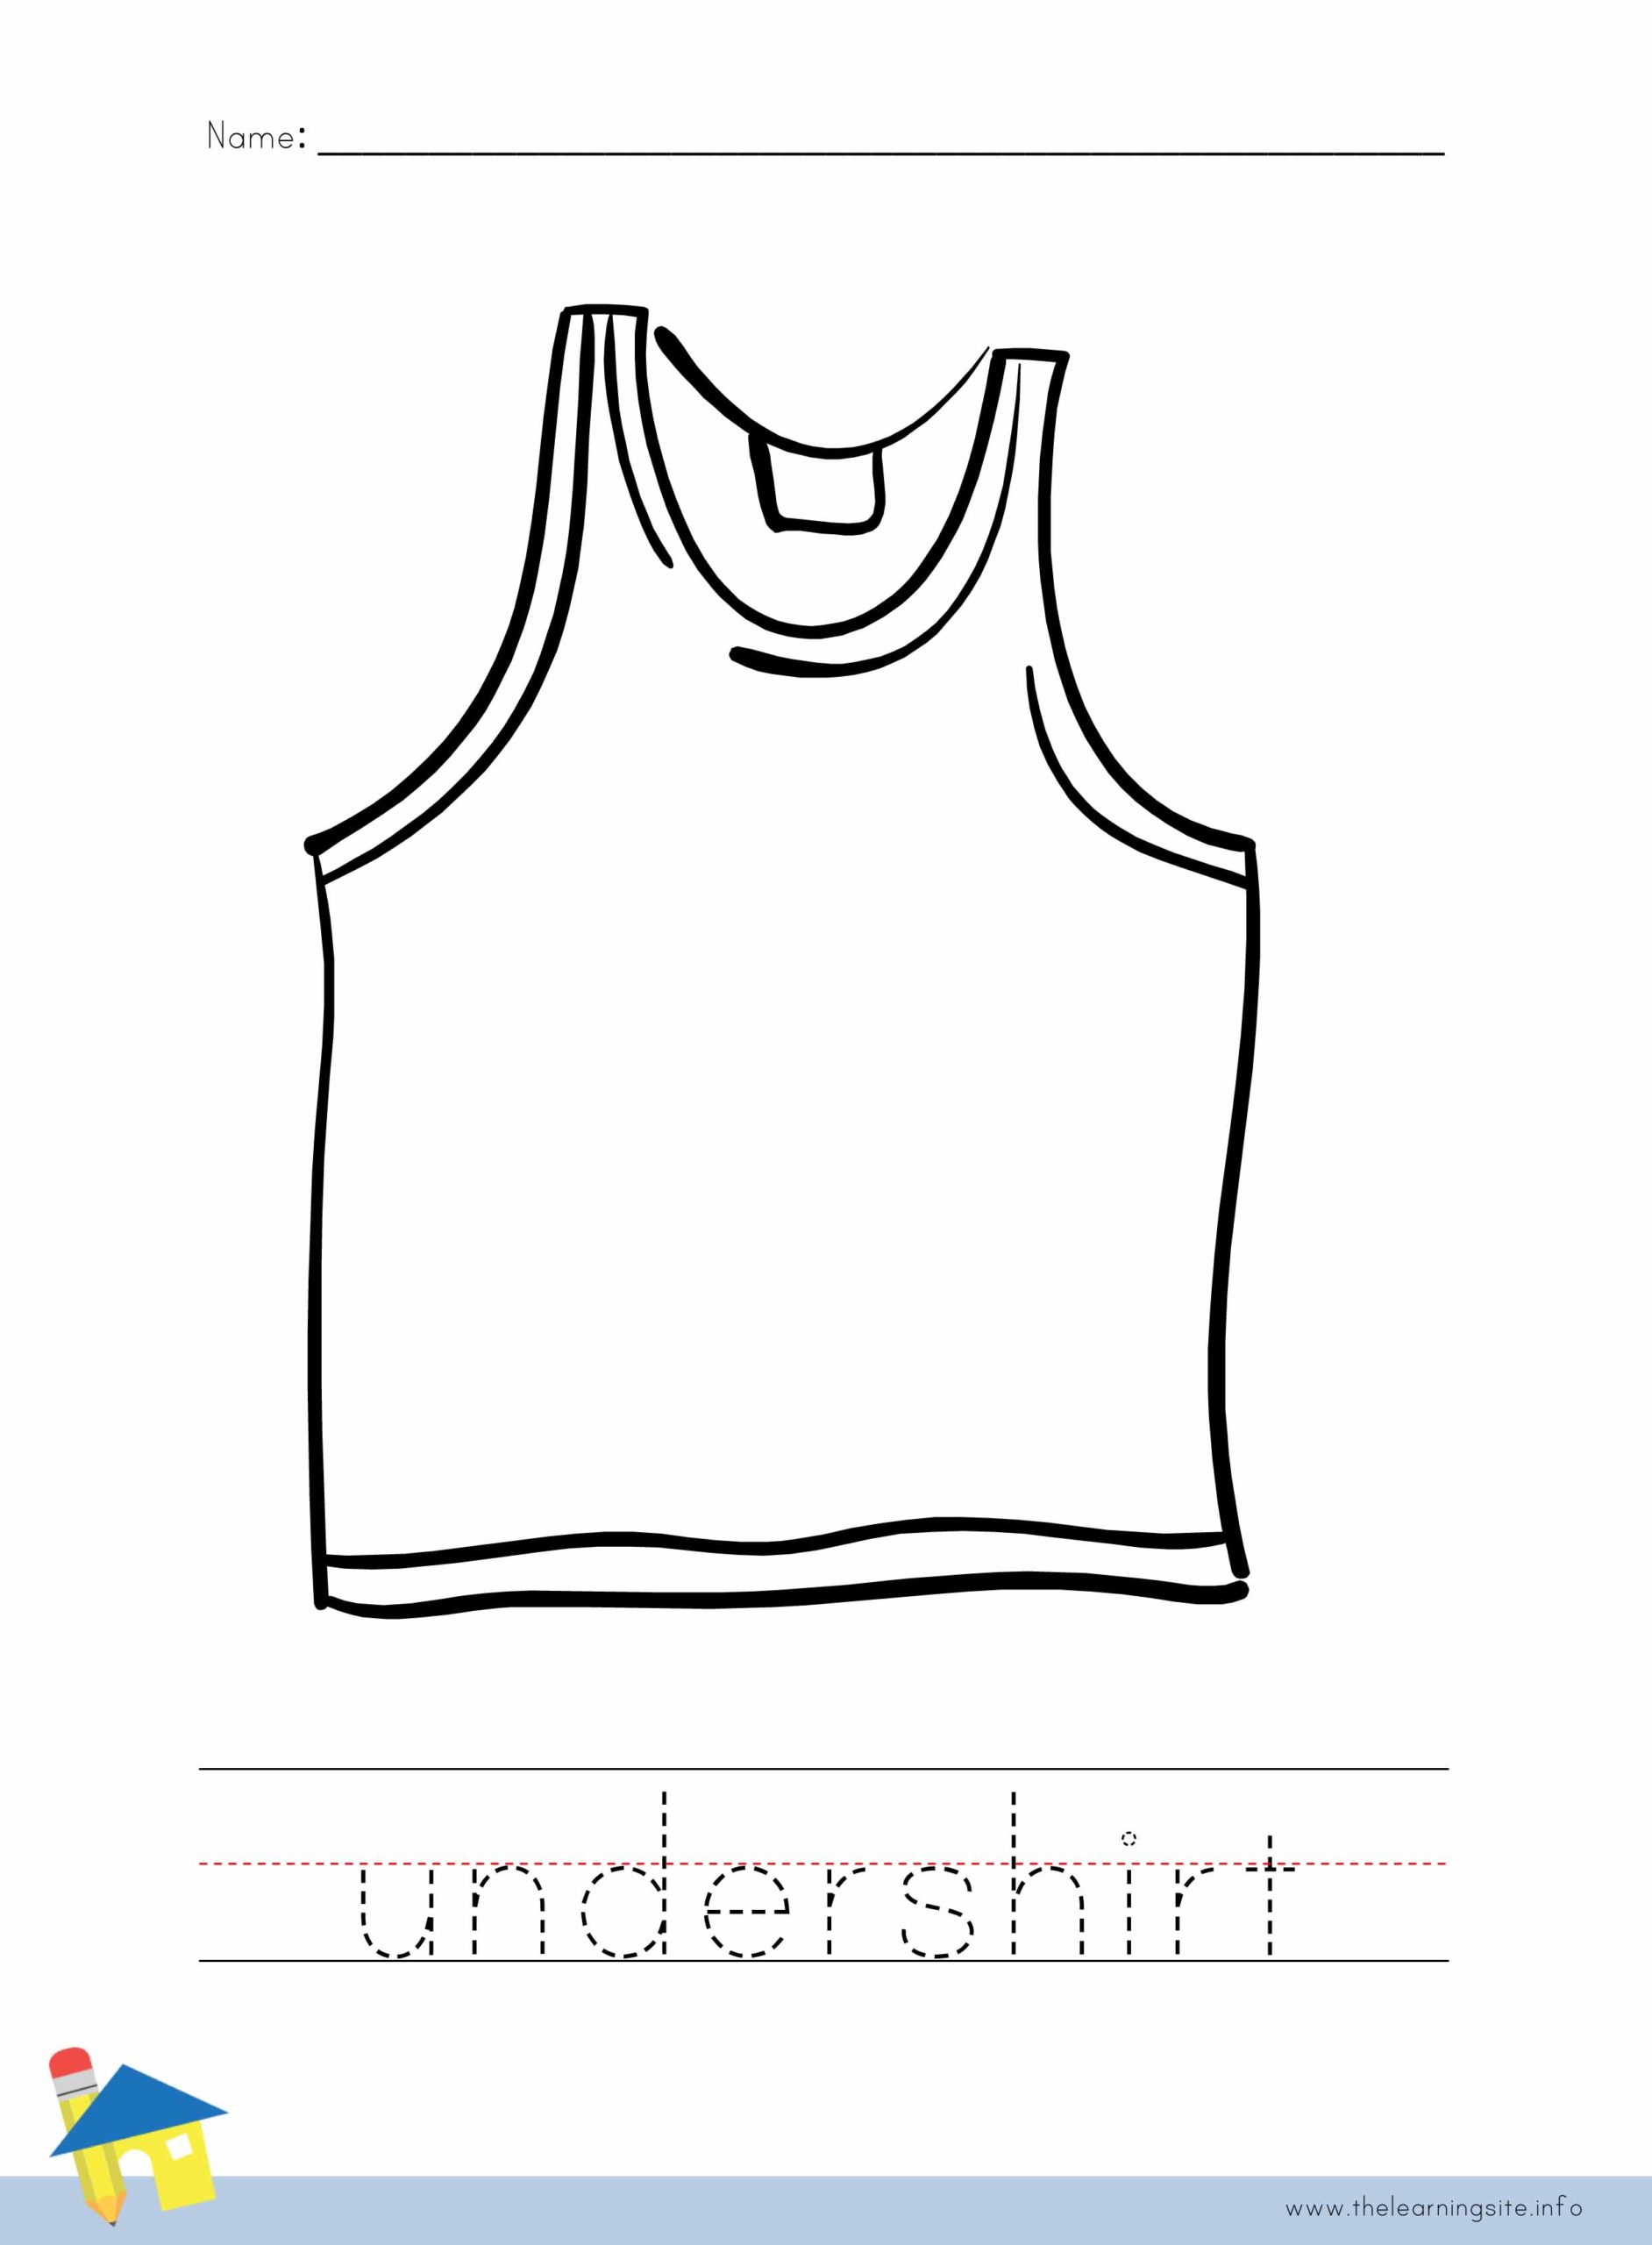 Undershirt Coloring Worksheet The Learning Site